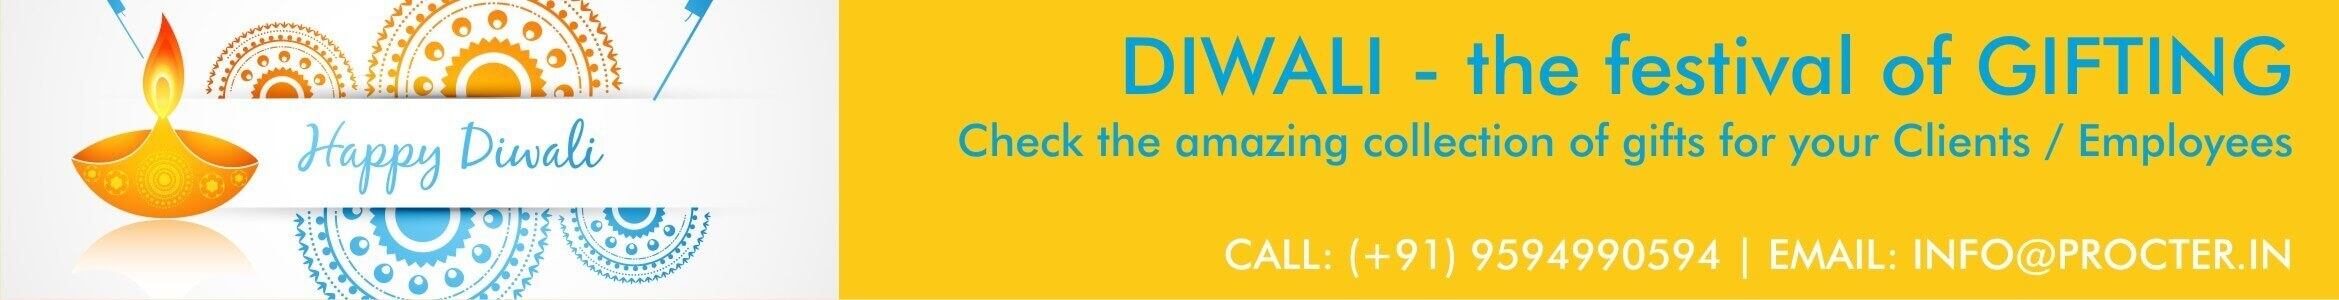 diwali corporate gifts ideas banner